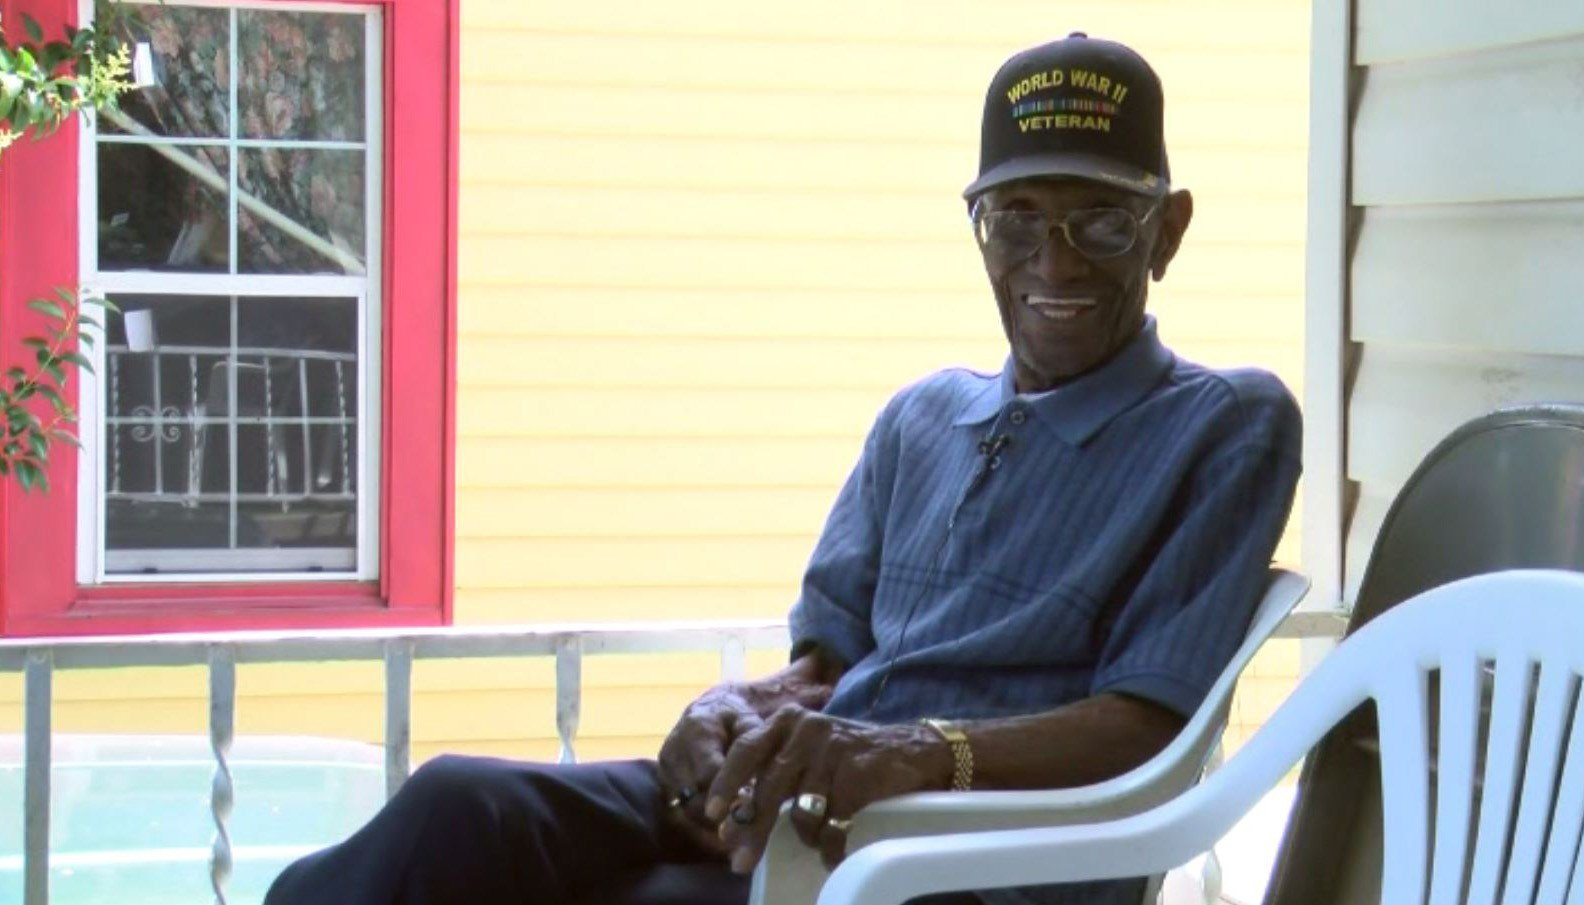 112-year-old Richard Overton's bank account drained